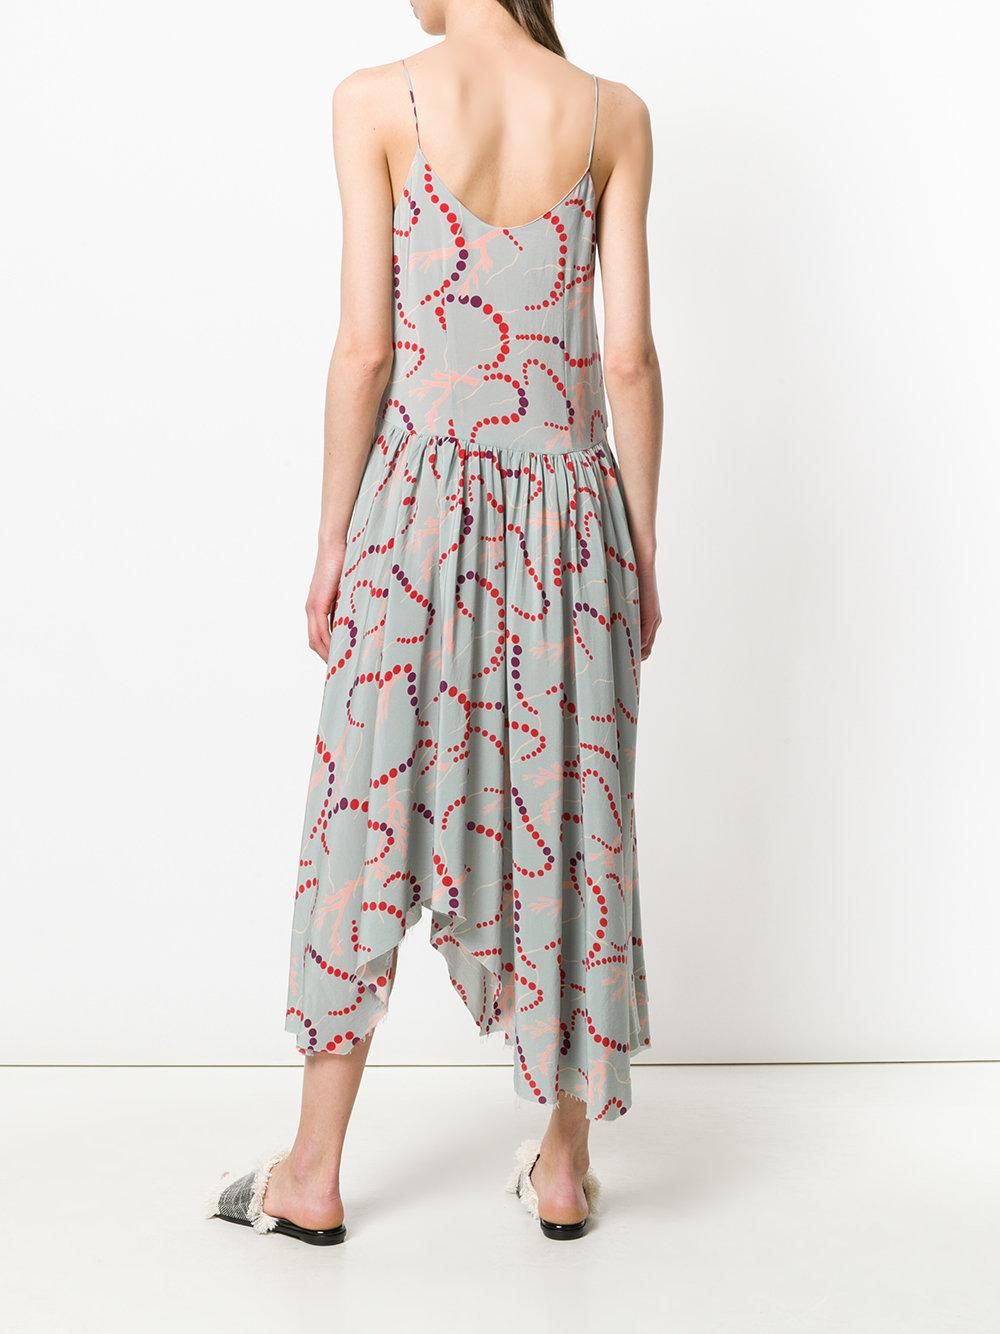 print asymmetric slip dress - Blue Erika Cavallini Semi Couture Authentic Cheap Online Clearance Outlet Locations 0PrjEVyPy